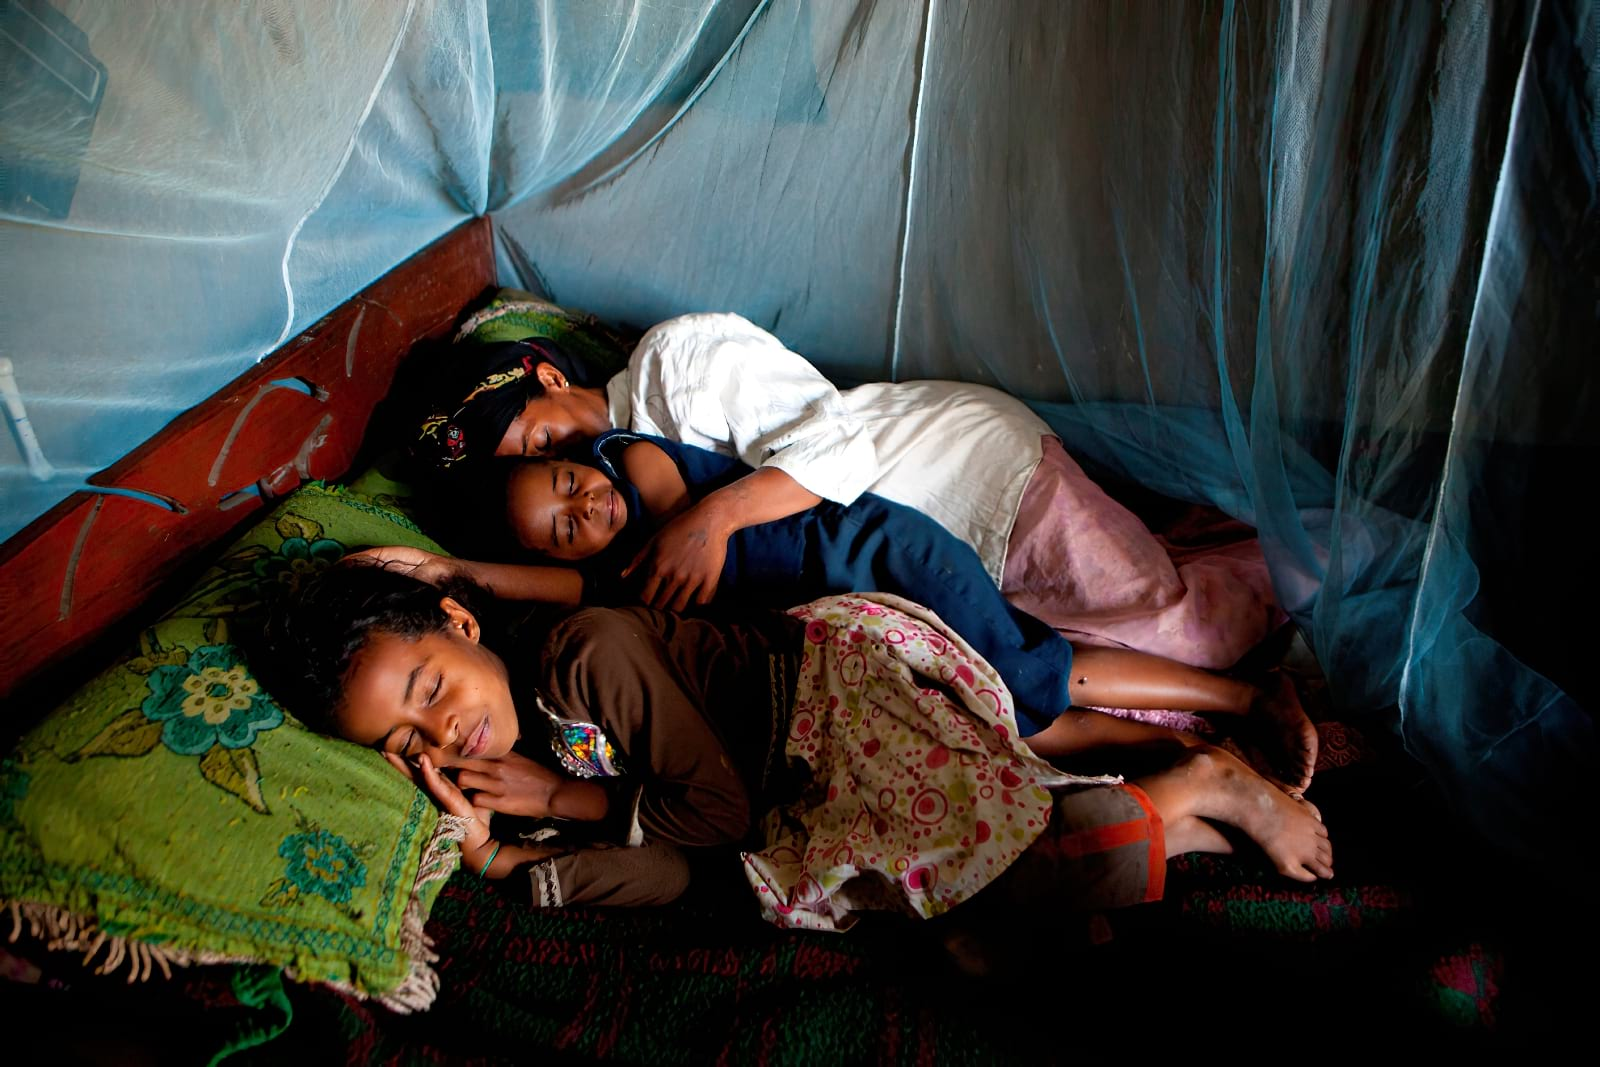 Family sleeping inside mosquito net covered bed.